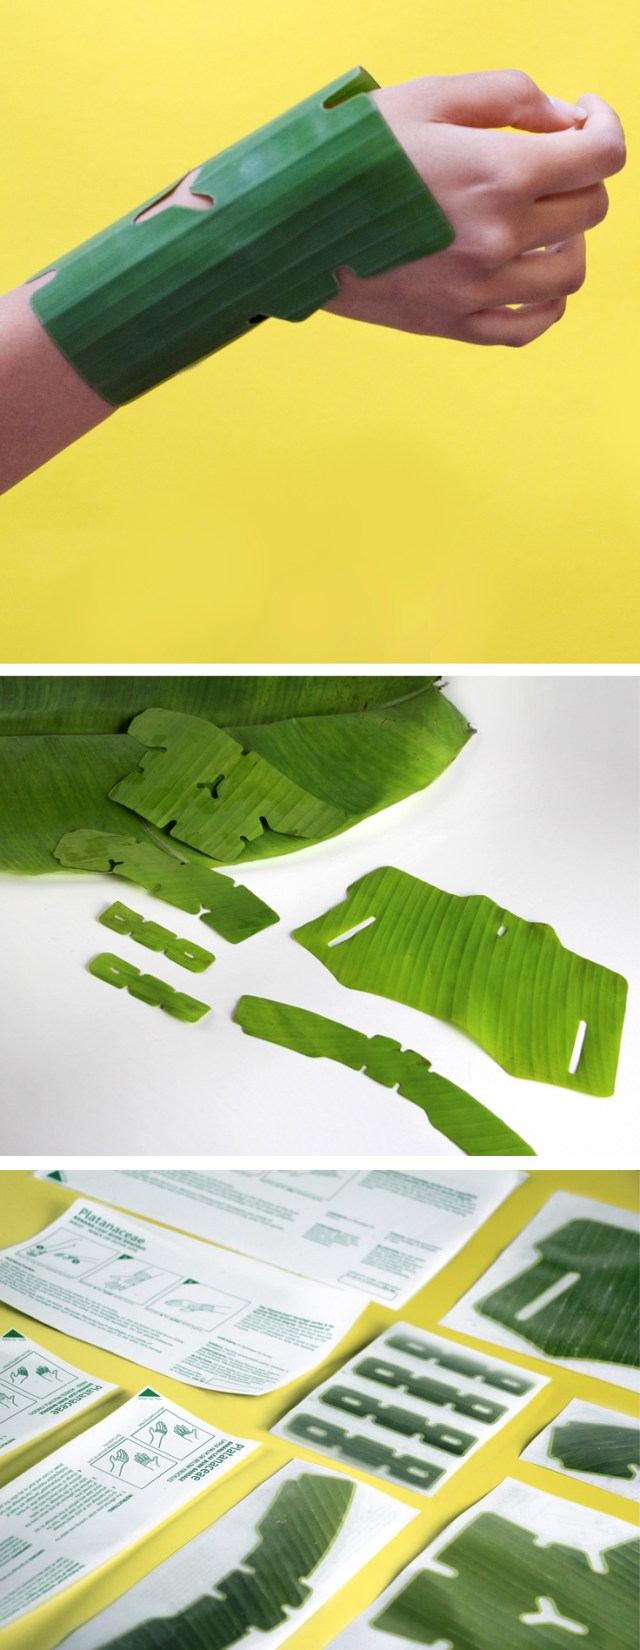 Banana leaf bandages that outperform synthetic materials yet are biodegradable and soothing, PLATANACEAE is a series of first aid bandages for burn wounds that happen at home. The hydrated texture of banana leaves is refreshing when in contact with the skin. These bandages wrap around different parts of the hands and arms. PLATANACEAE | Designer: Paula Cermeno | Lexus Design Award 2017 | Milan Design Week | La Triennale di Milano | Awesome Products #product_design